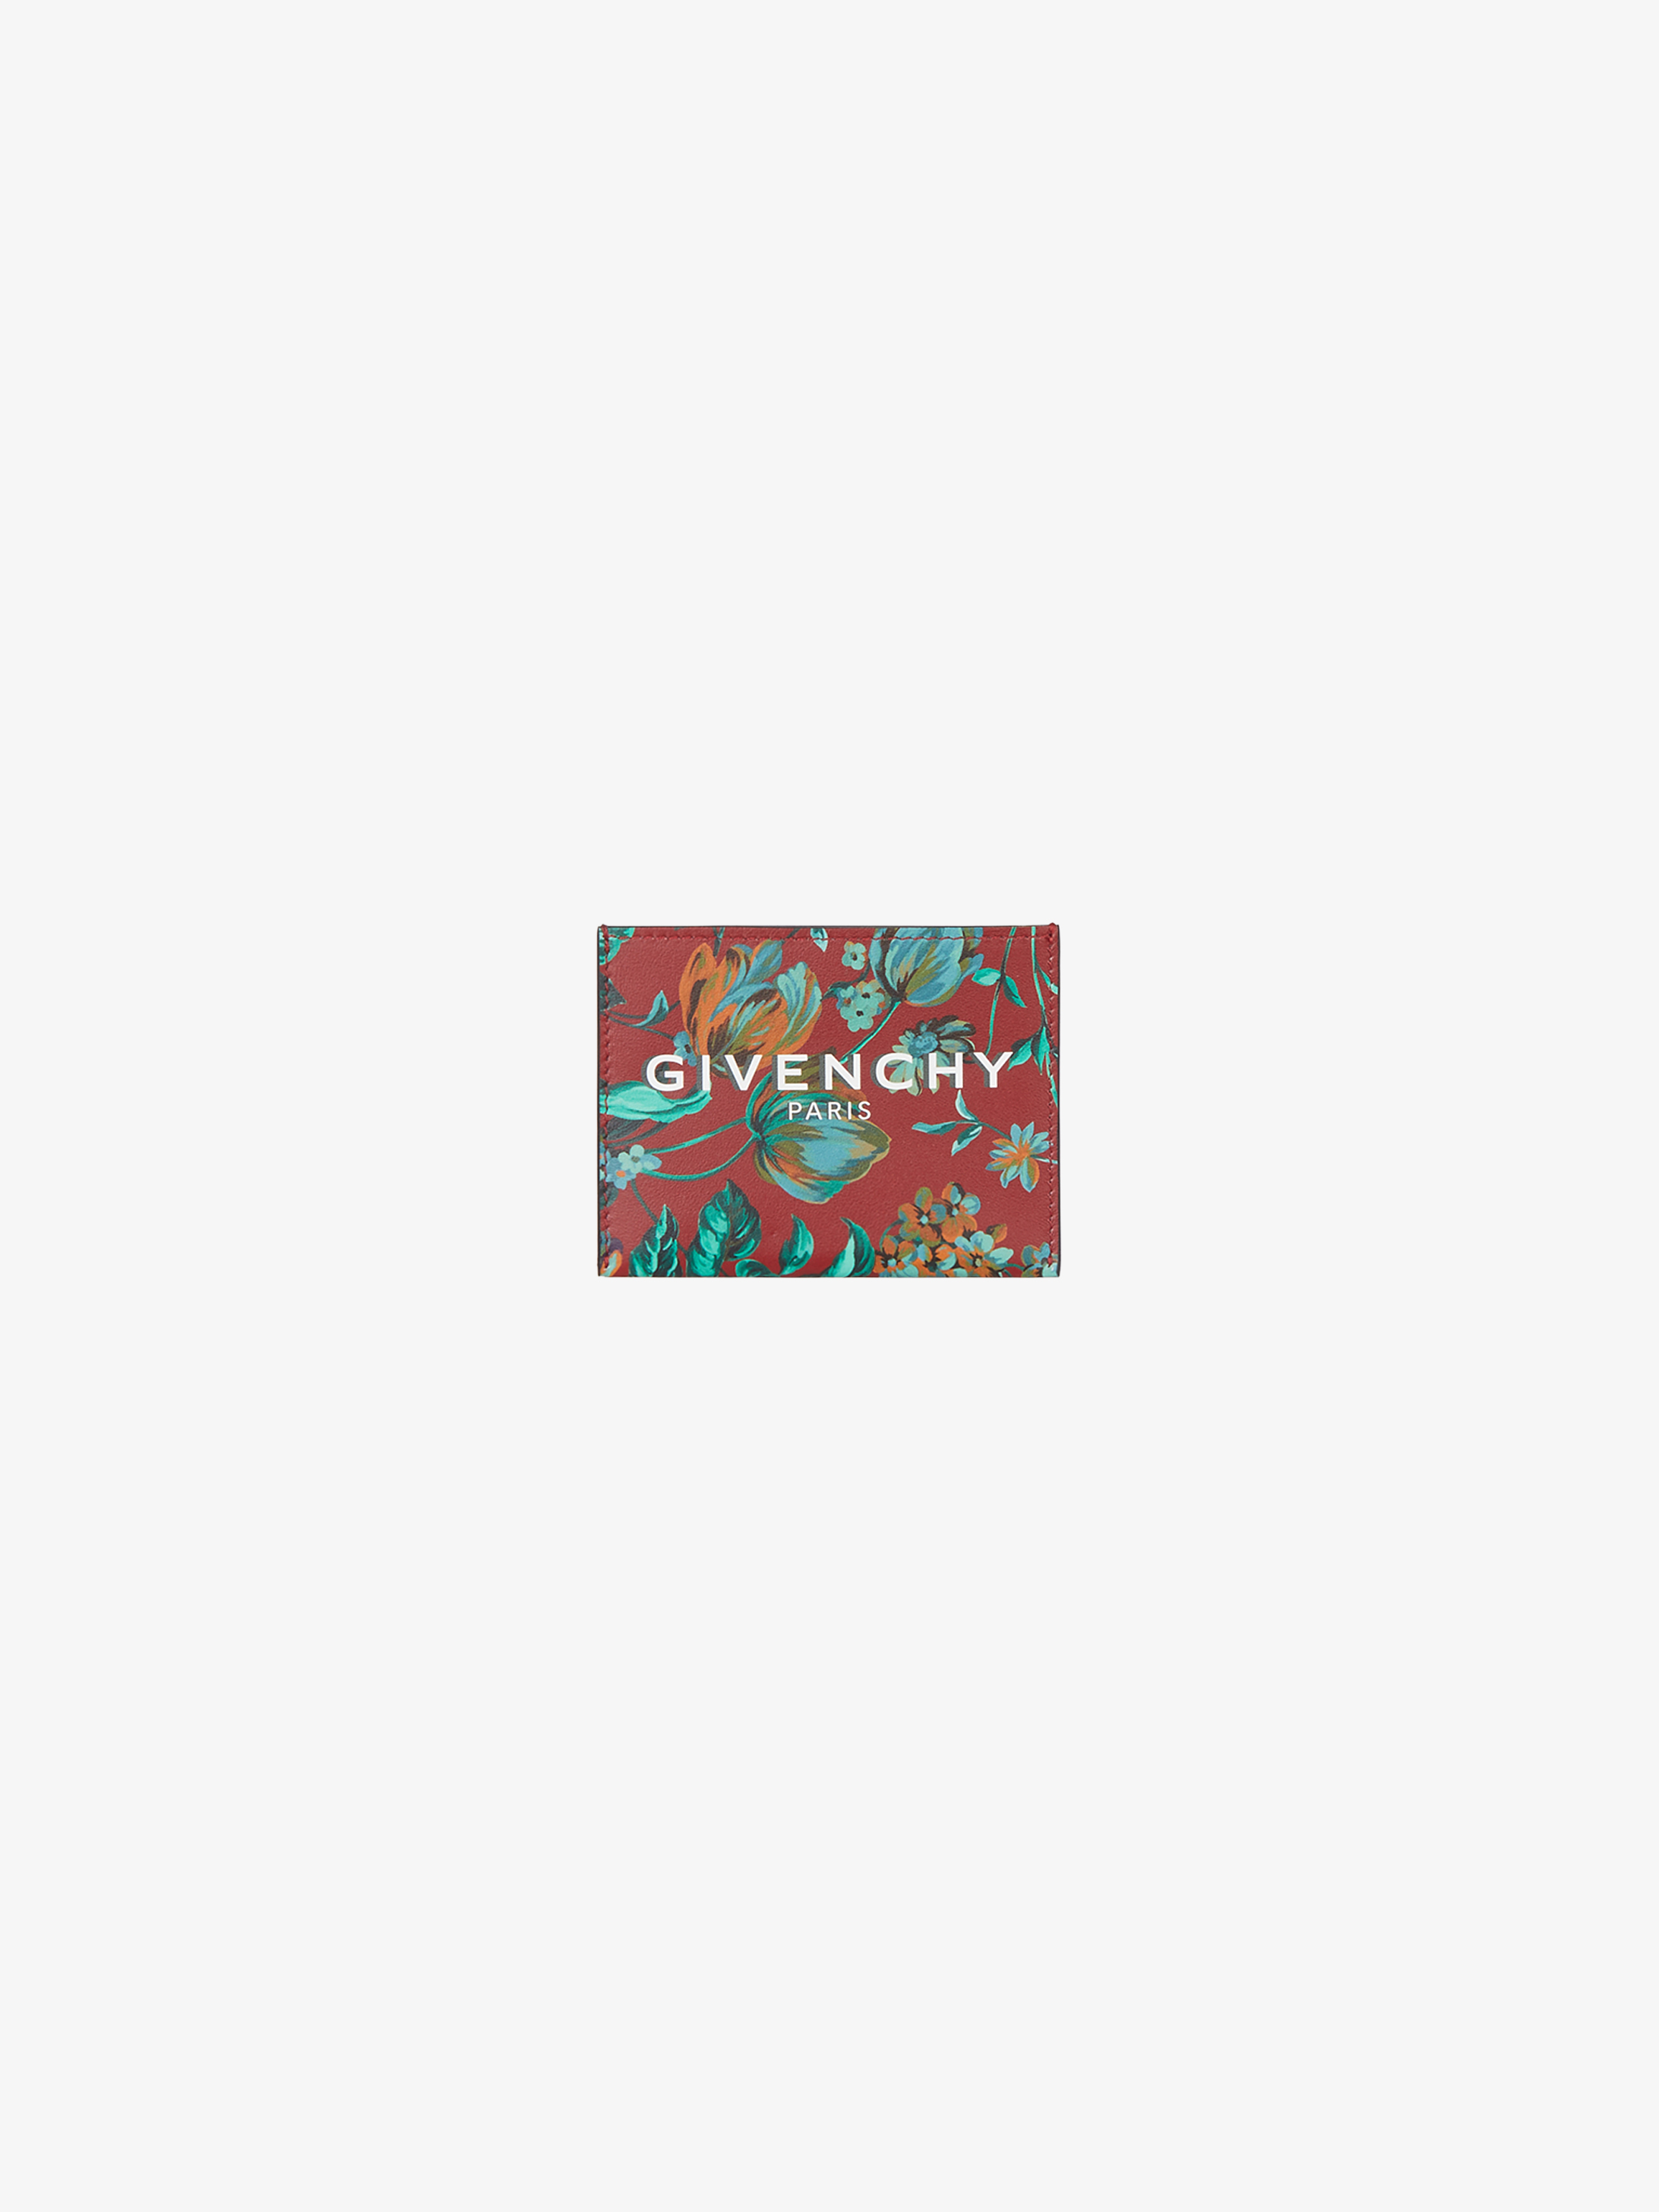 GIVENCHY PARIS card holder in floral printed leather